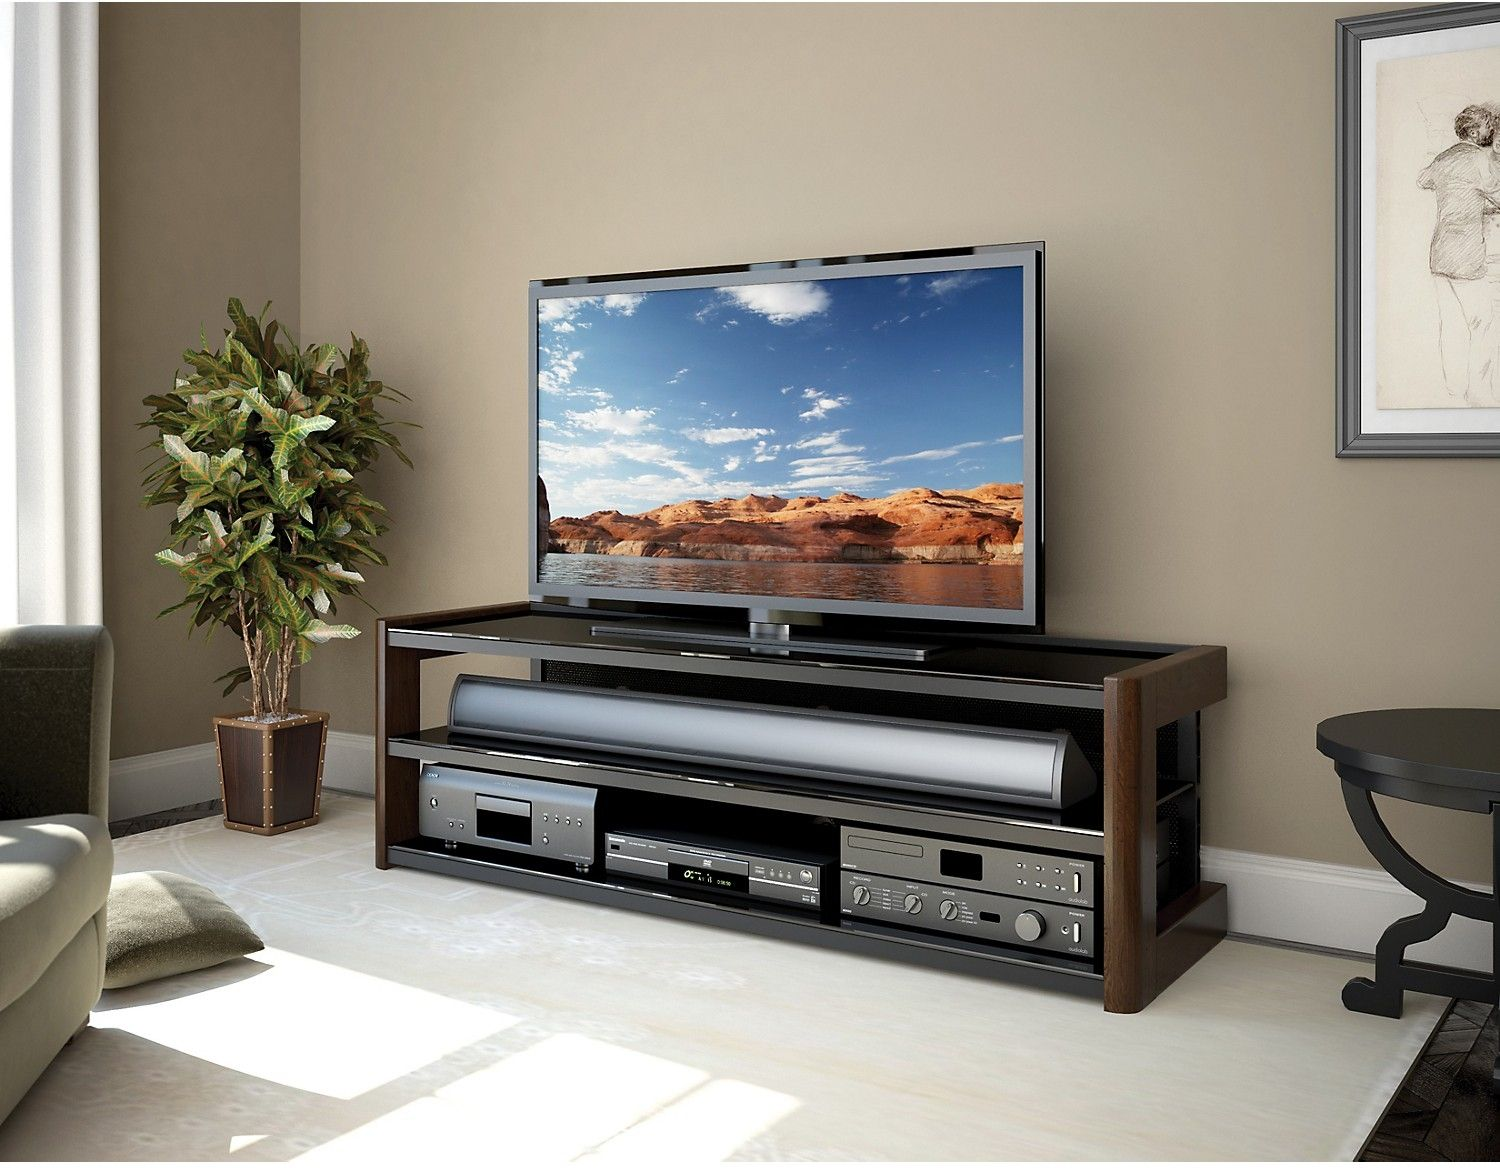 Design Tv Rack Cool Tv Rack With Tv Rack With Design Tv Rack Nepal 60